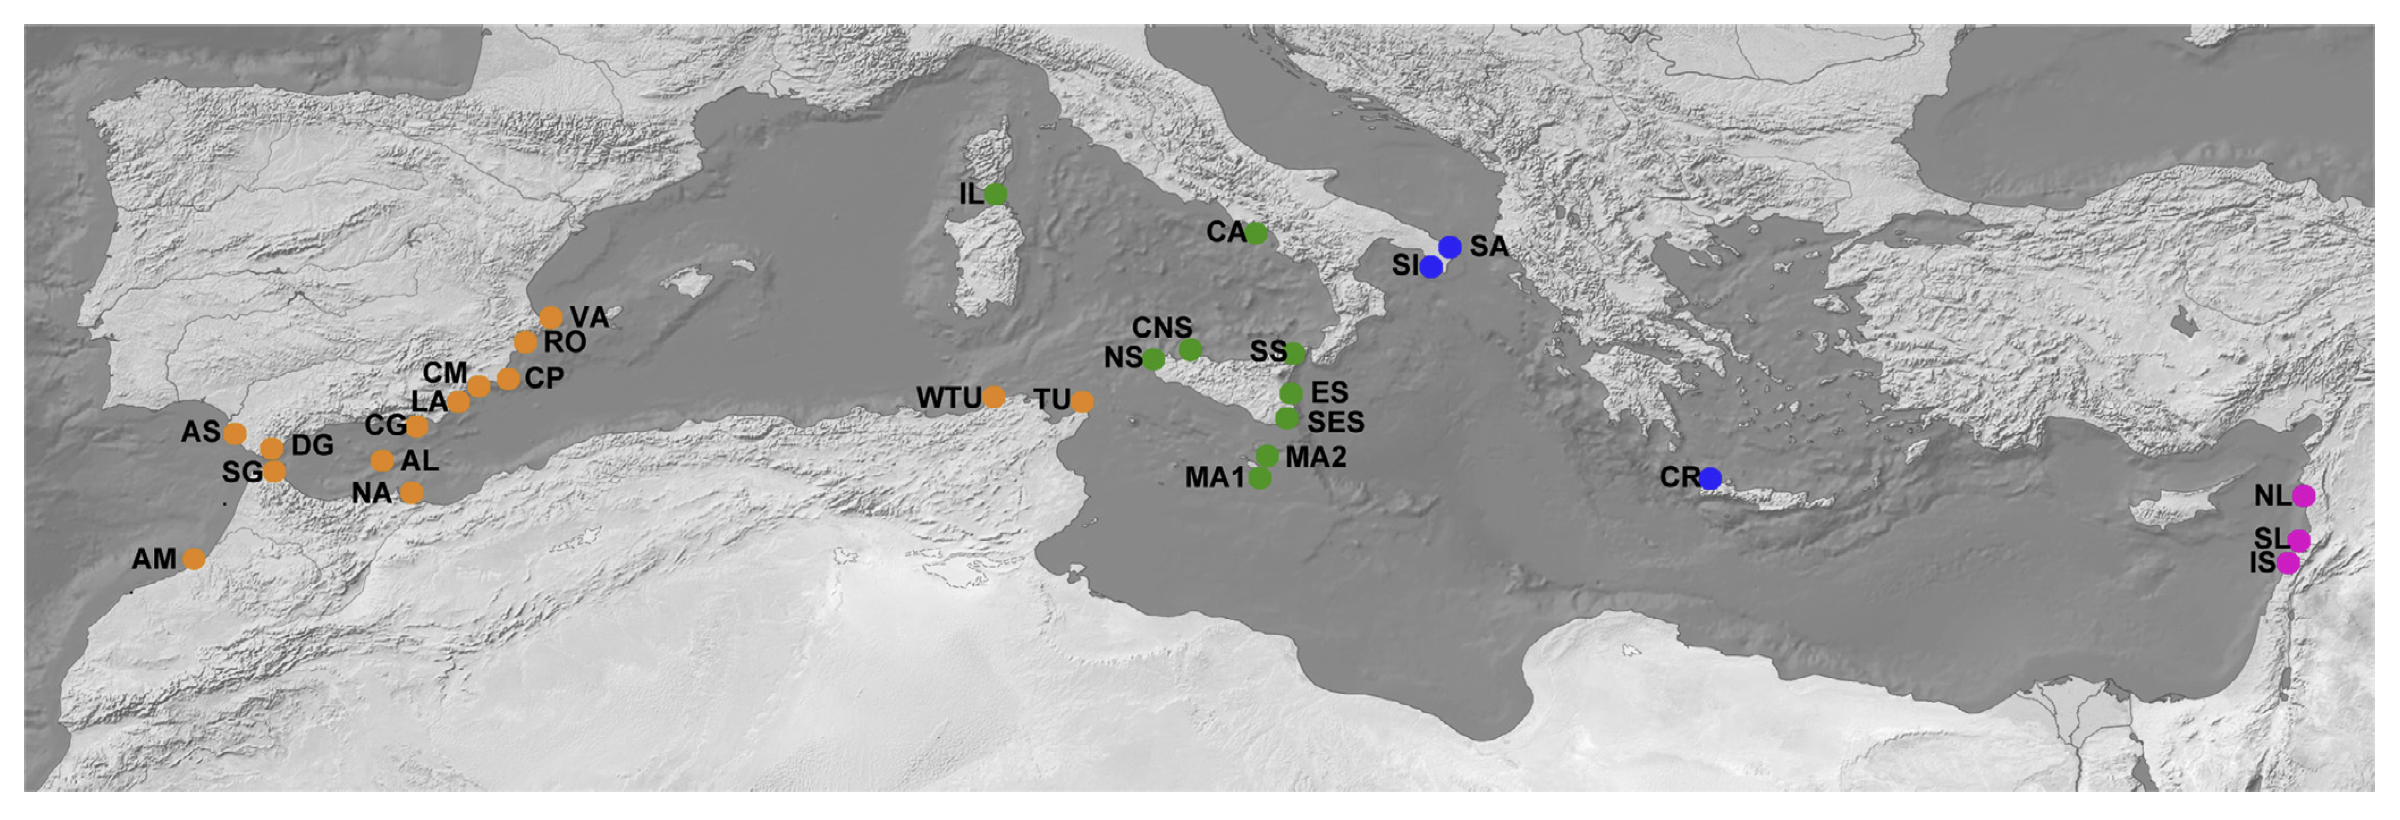 Fig. 1. Sampling localities and distribution of the main lineages identified in Dendropoma petraeum. Locality codes as indicated in Table 1. Colors represent lineages: Western (orange), Tyrrhenian (green), Ionian-Aegean (blue), Levantine (pink).